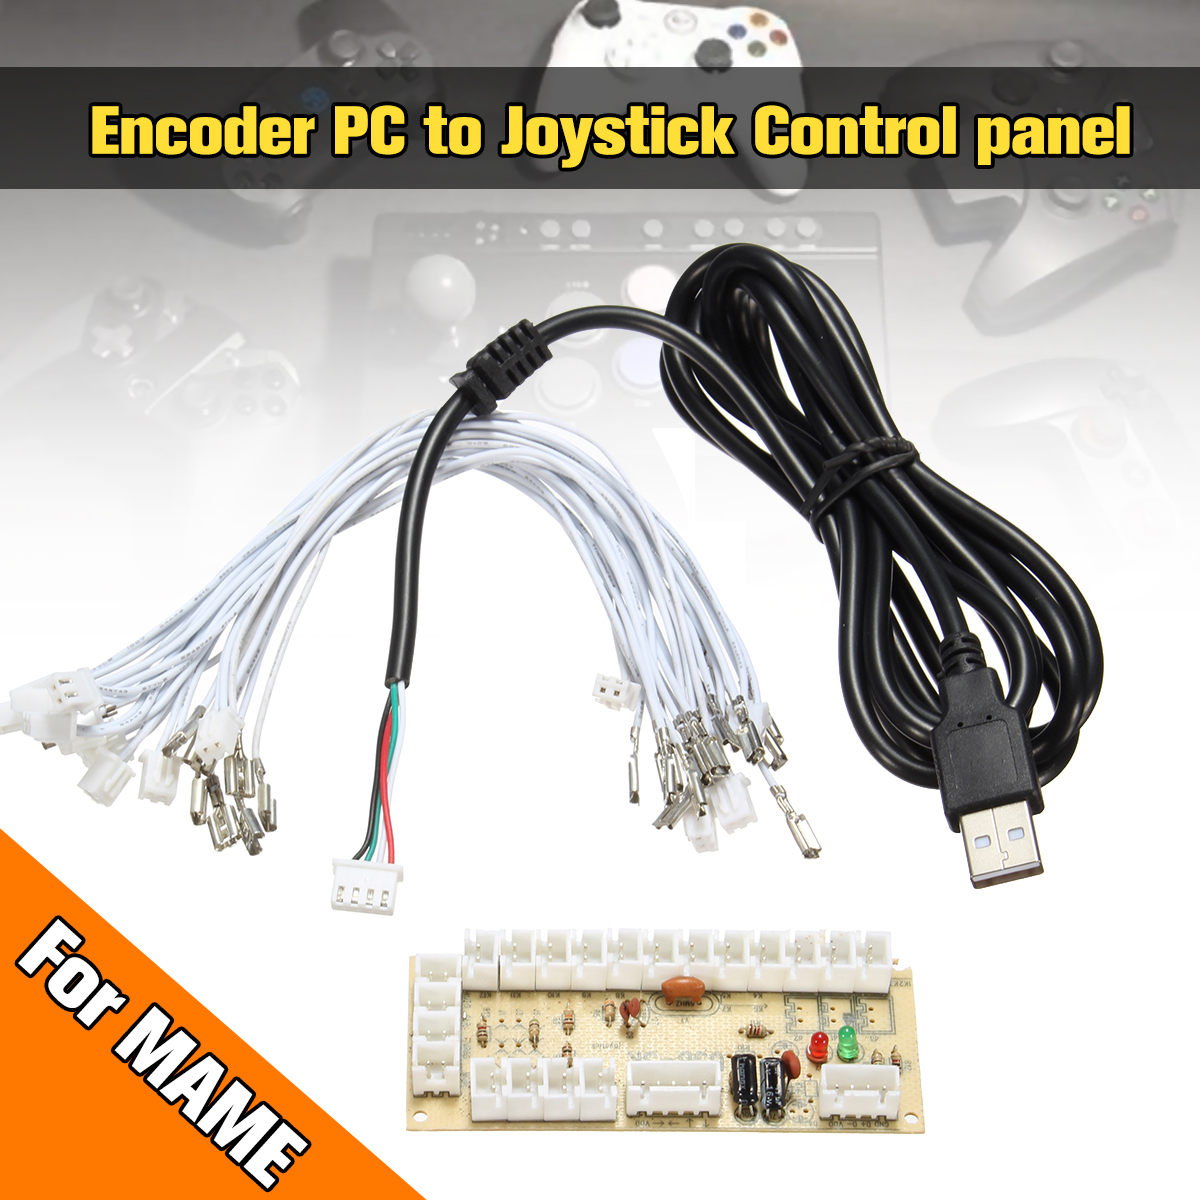 DIY Arcade Rocker Circuit Board Zero Delay Arcade USB Encoder PC to Joystick Control Panel For MAME 2pin + Push Buttons safety and often converter 4 buttons to remote controle arcade transform screen to street fighter for tekken display